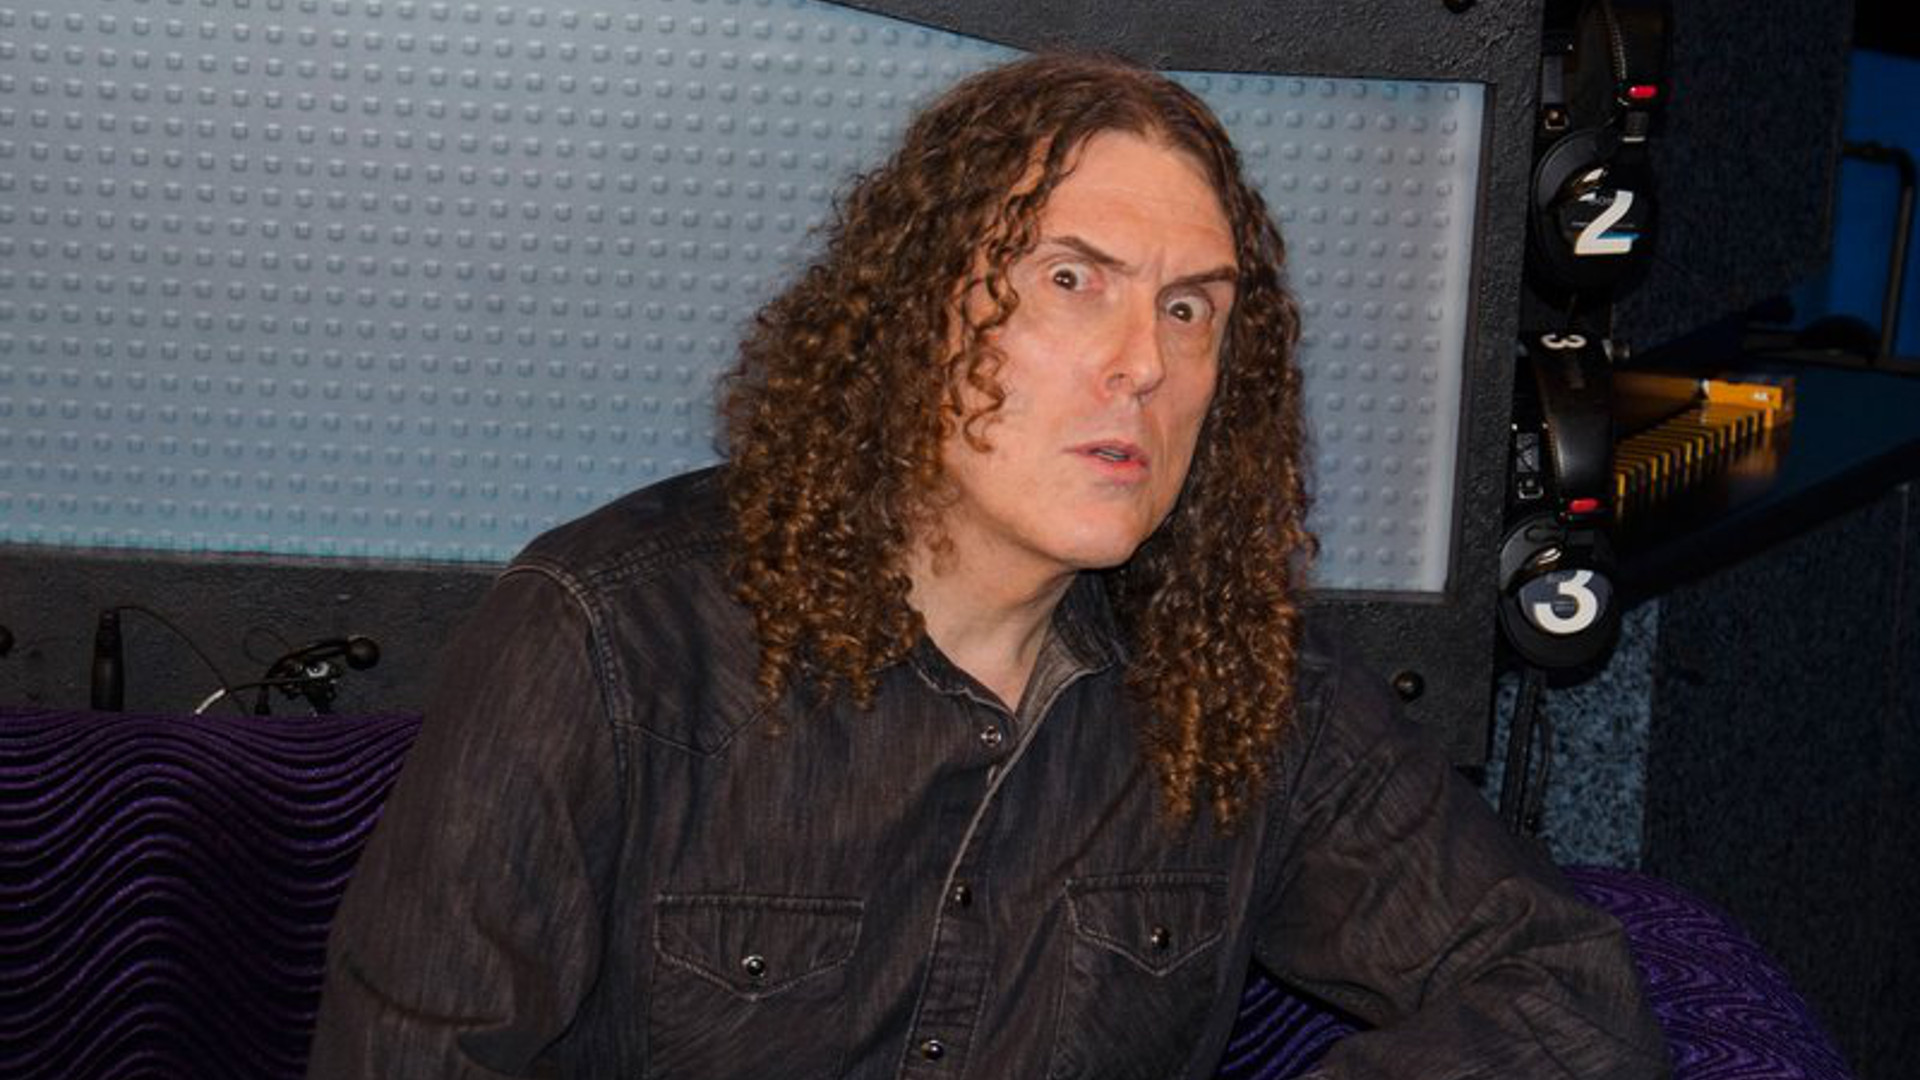 an analysis of the perceptions on howard stern Nearly 10 years after howard stern left terrestrial radio, sirius xm radio (nasdaq: siri) is setting aside two weeks this month to celebrate the shock jock in a press release, the company set .